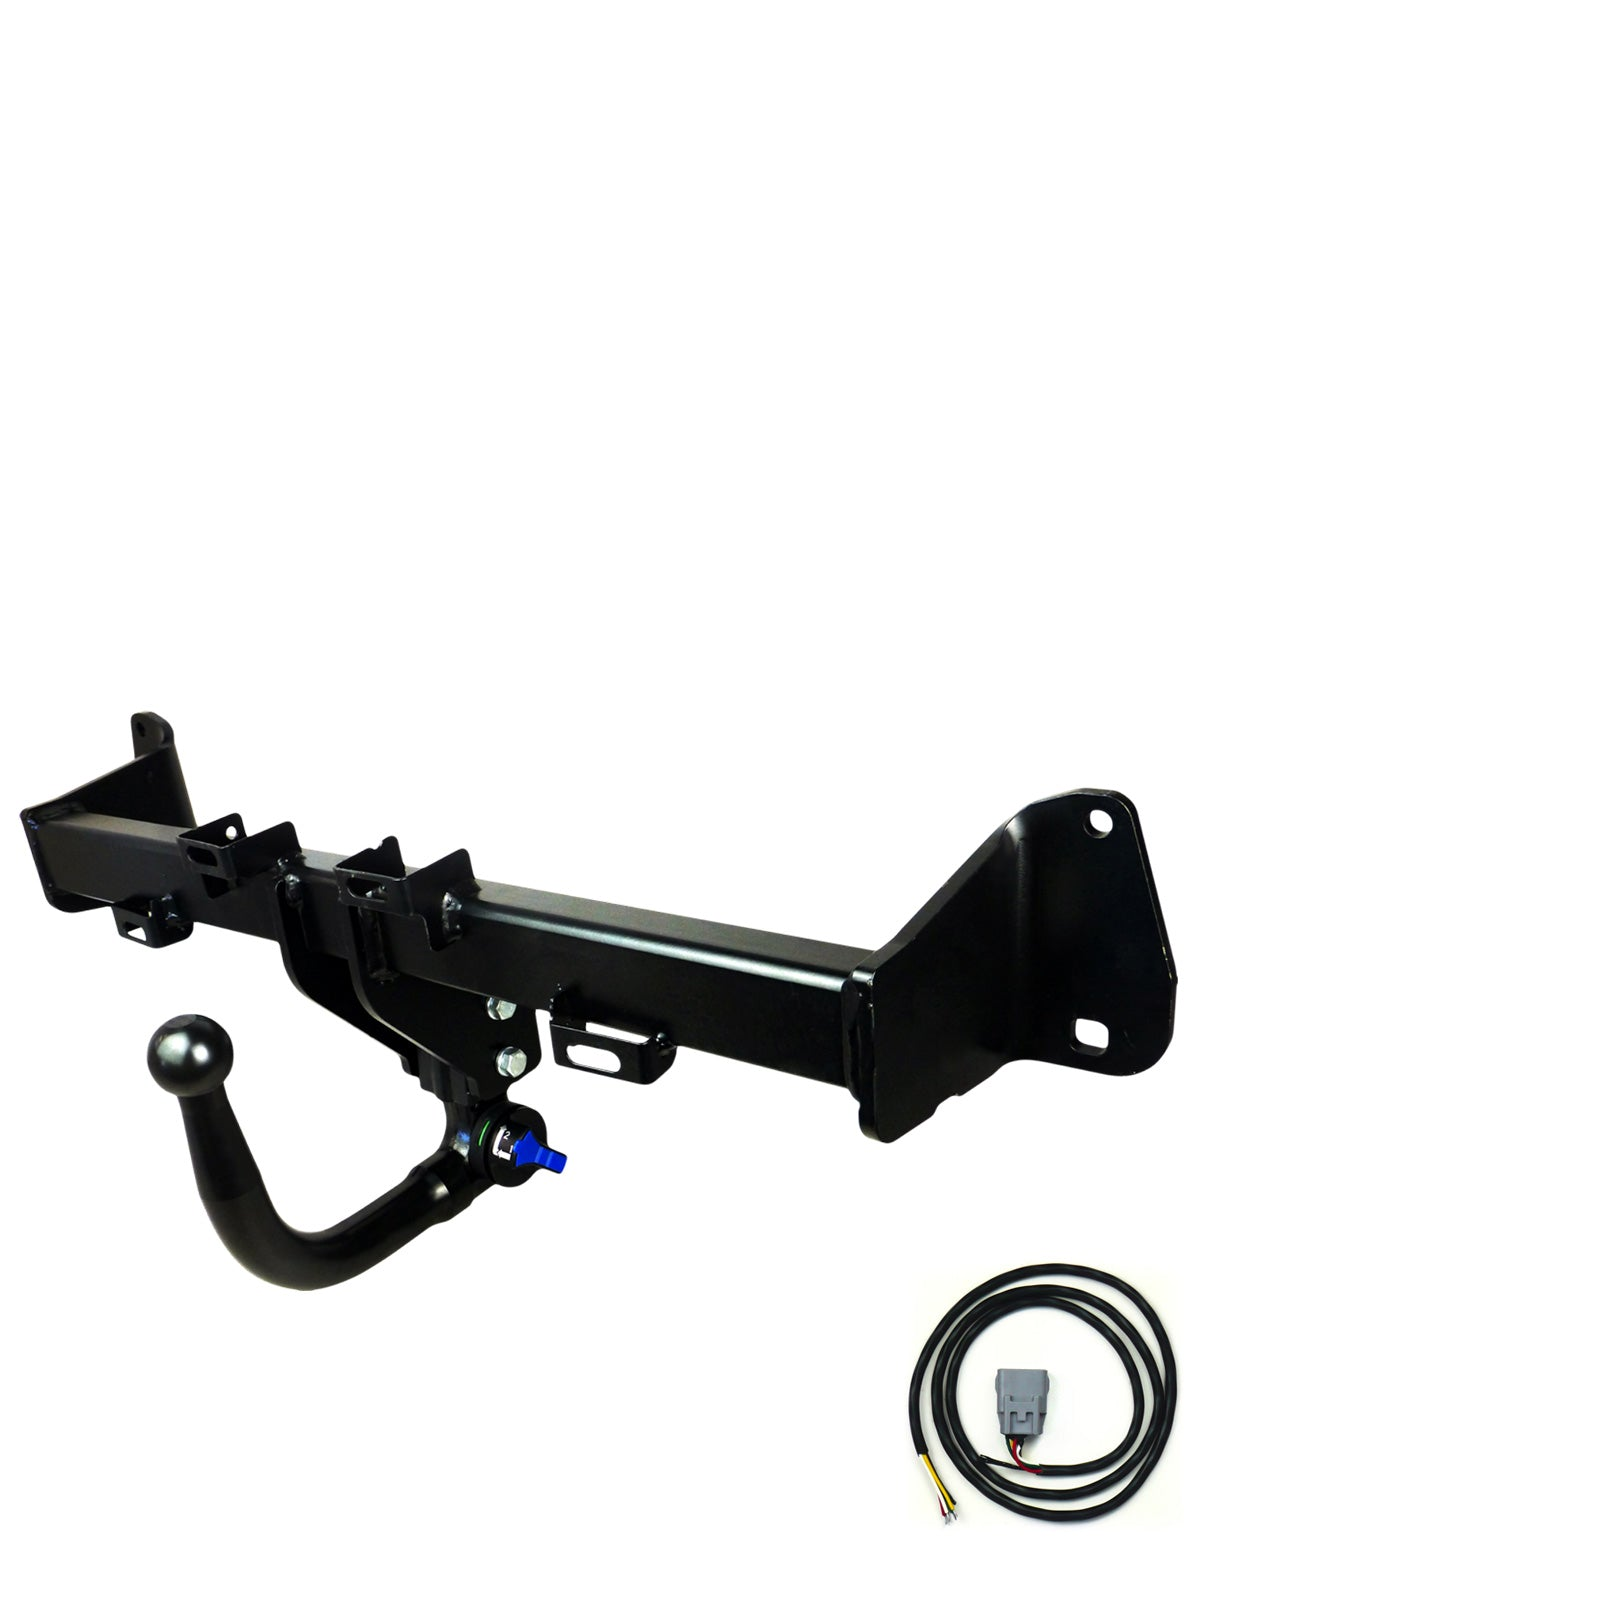 TAG Towbars European Style Tongue to suit Volkswagen Tiguan (05/2008 - 08/2016)